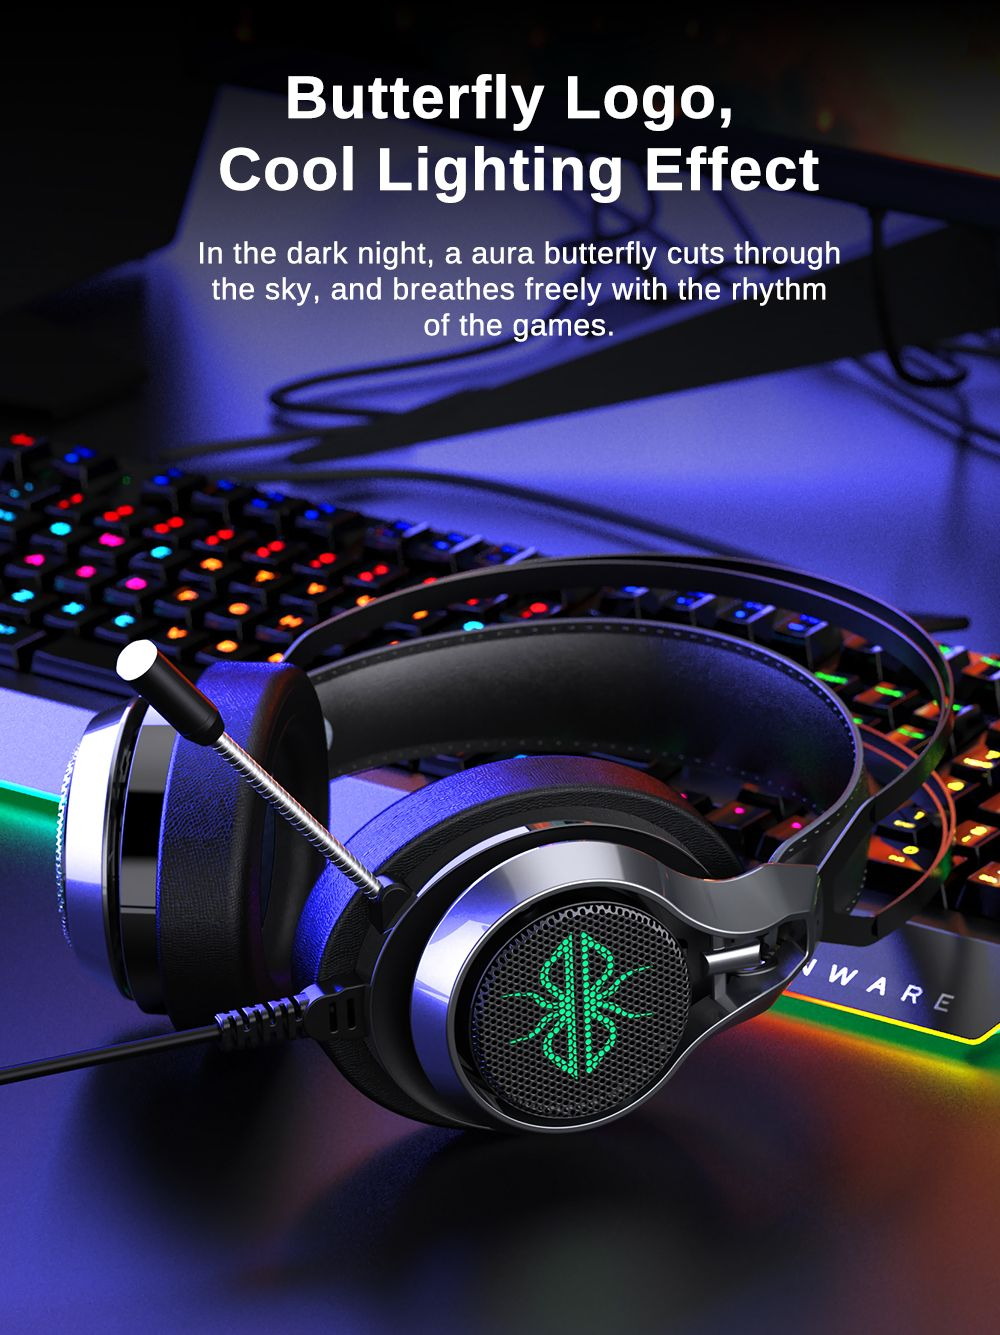 Dacom Gh05 Wired Over Ear Gaming Headphone (2)